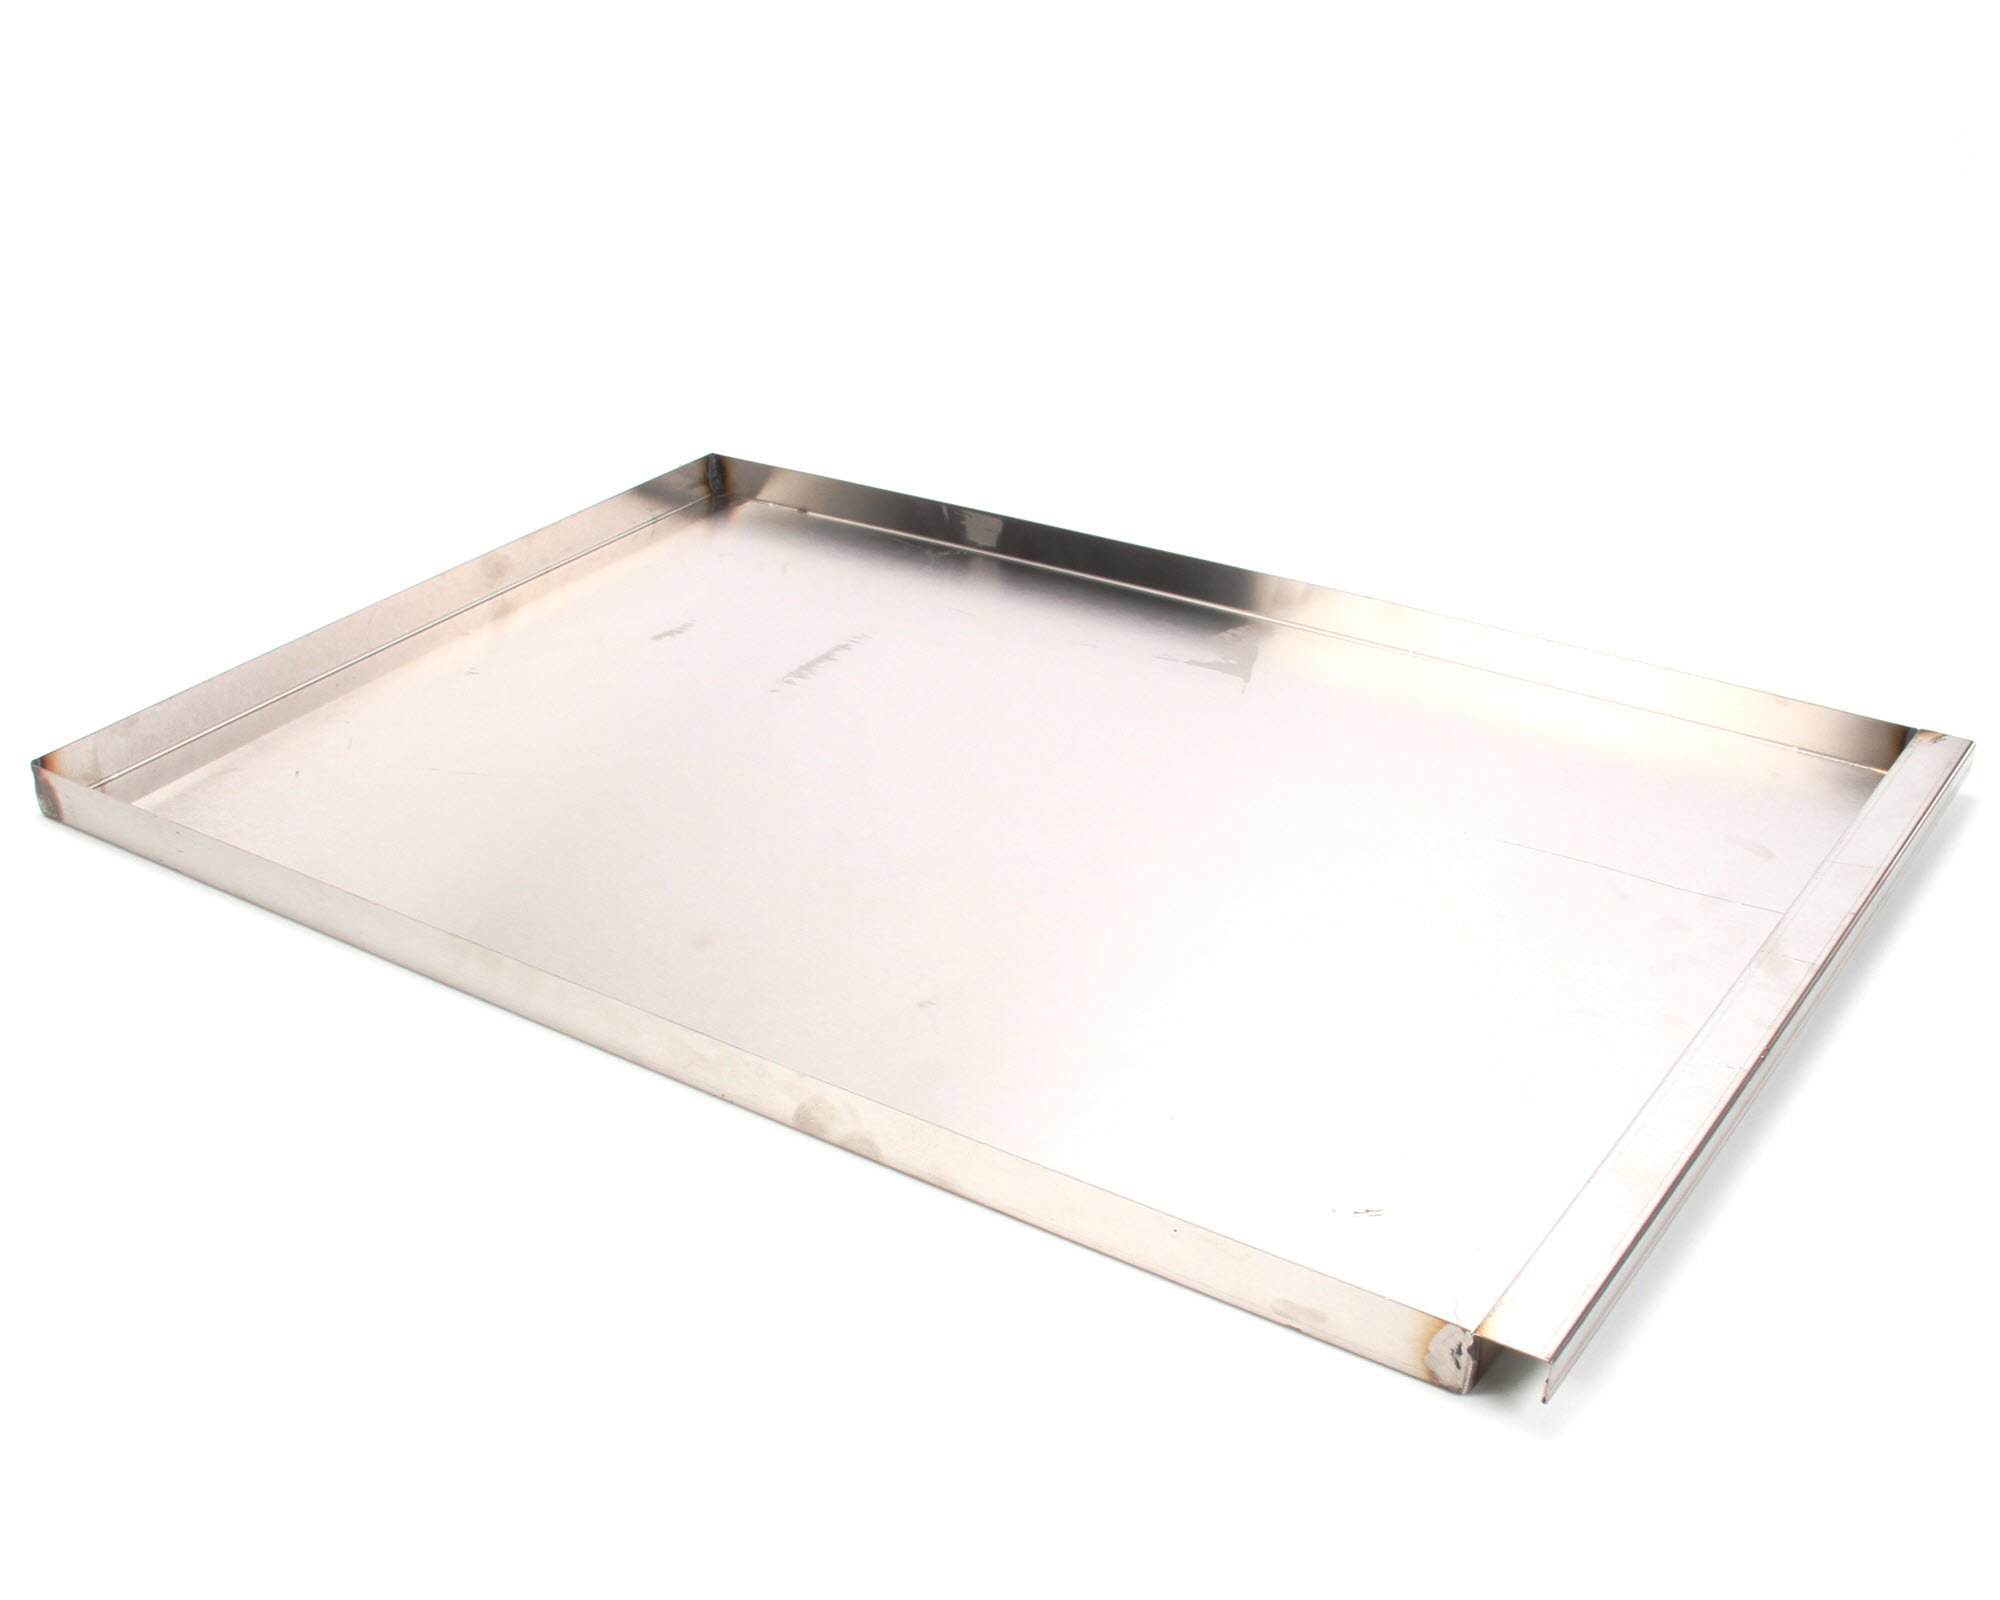 Town Food Service 227220 Drip Pan, 19-1/4 x 29-1/4-Inch, Stainless Steel